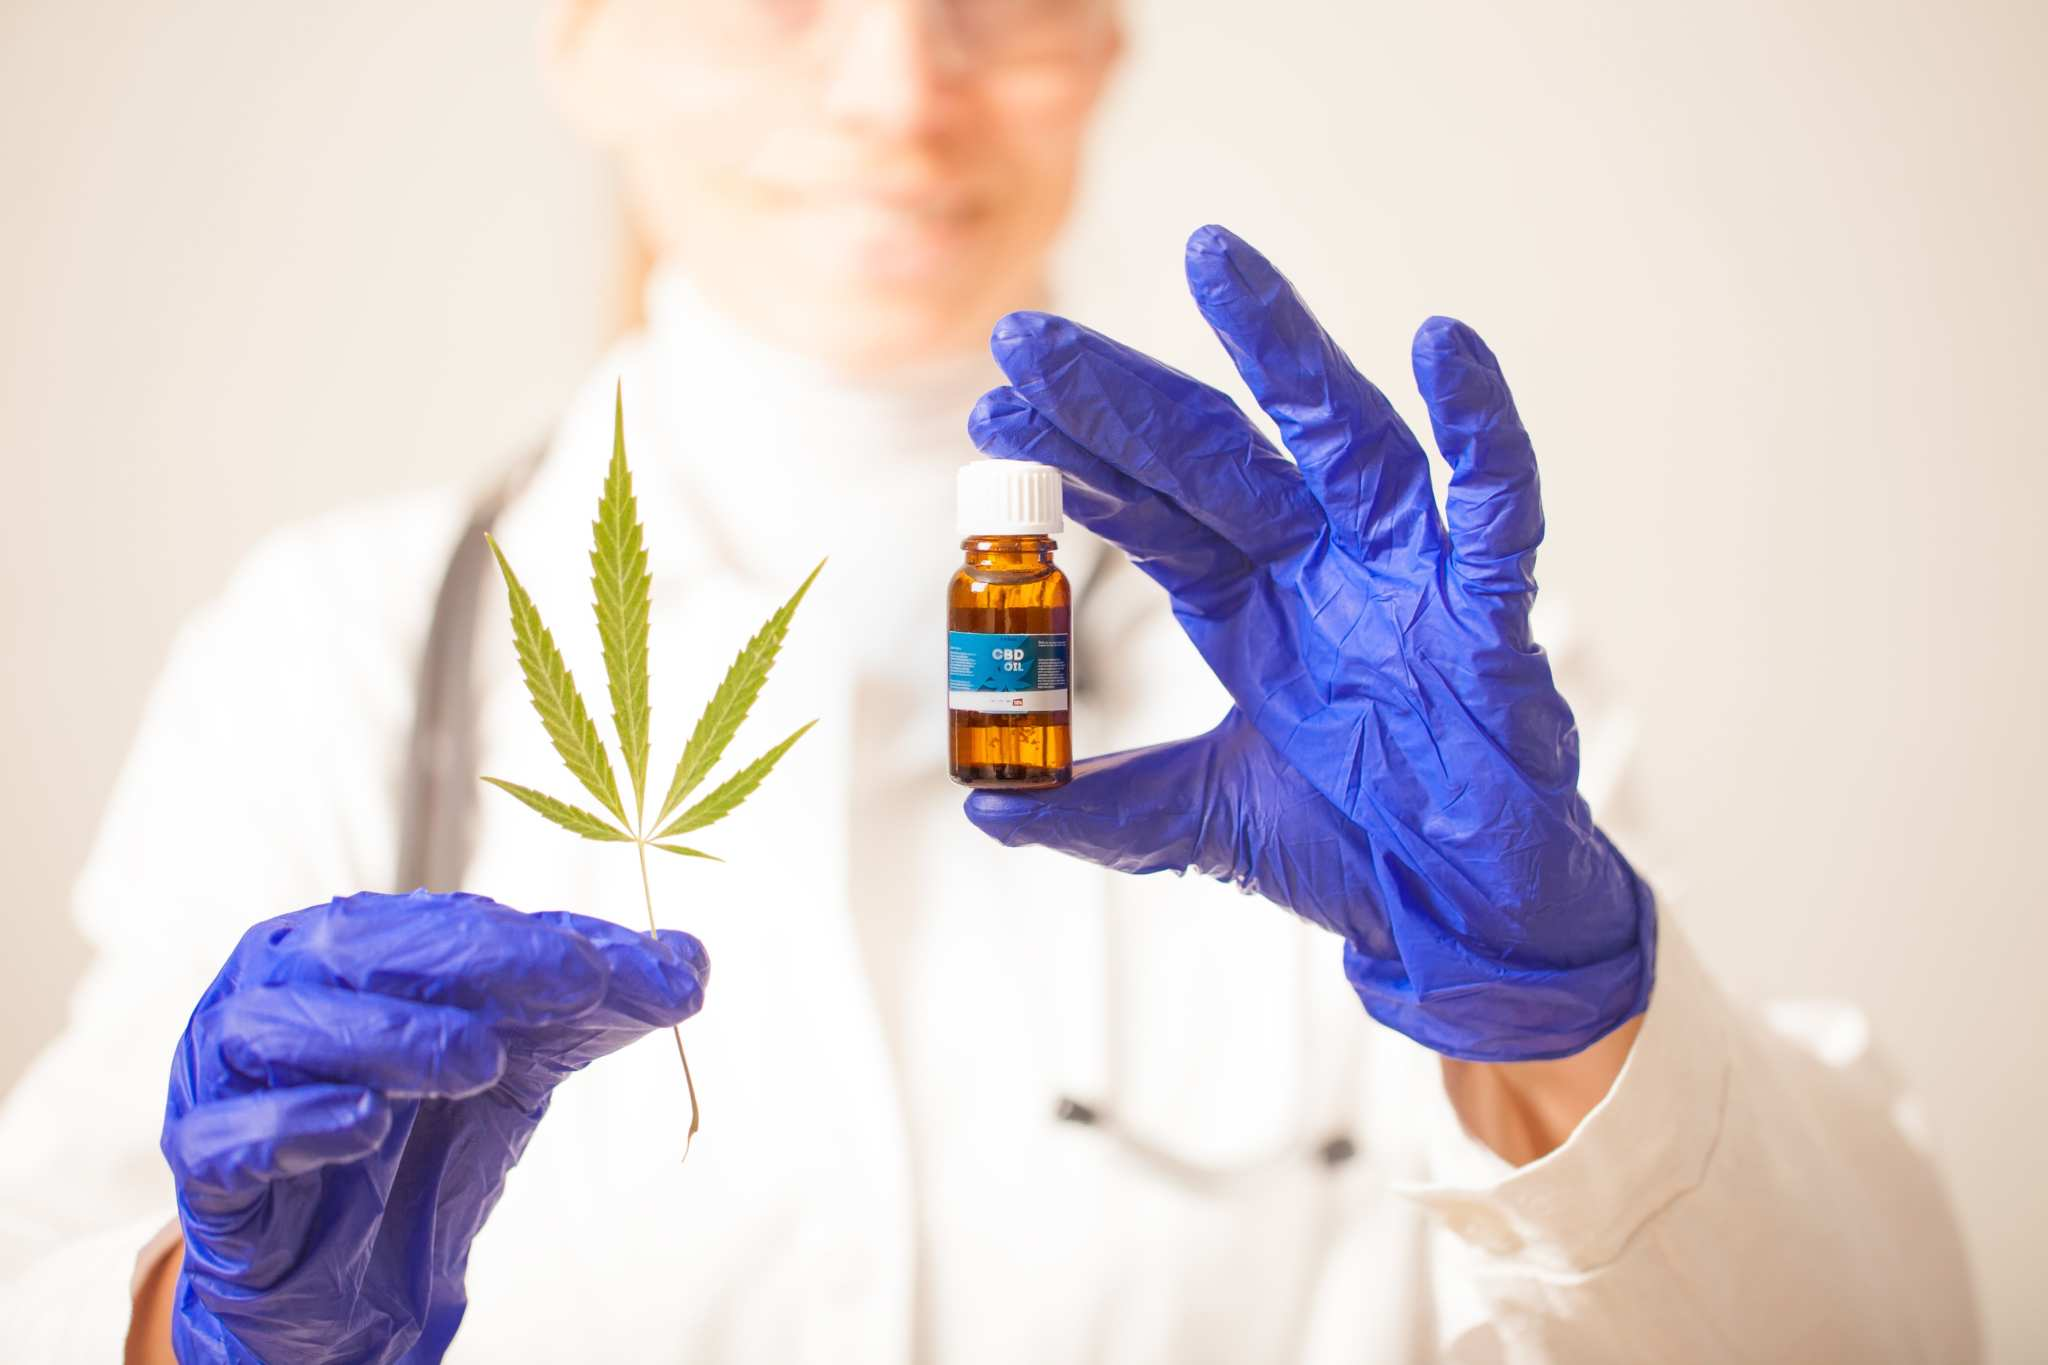 A gloved scientist with a vial of CBD and a hemp leaf. Scientists are reluctant to research CBD due to legal and regulatory barriers, but that's beginning to change.